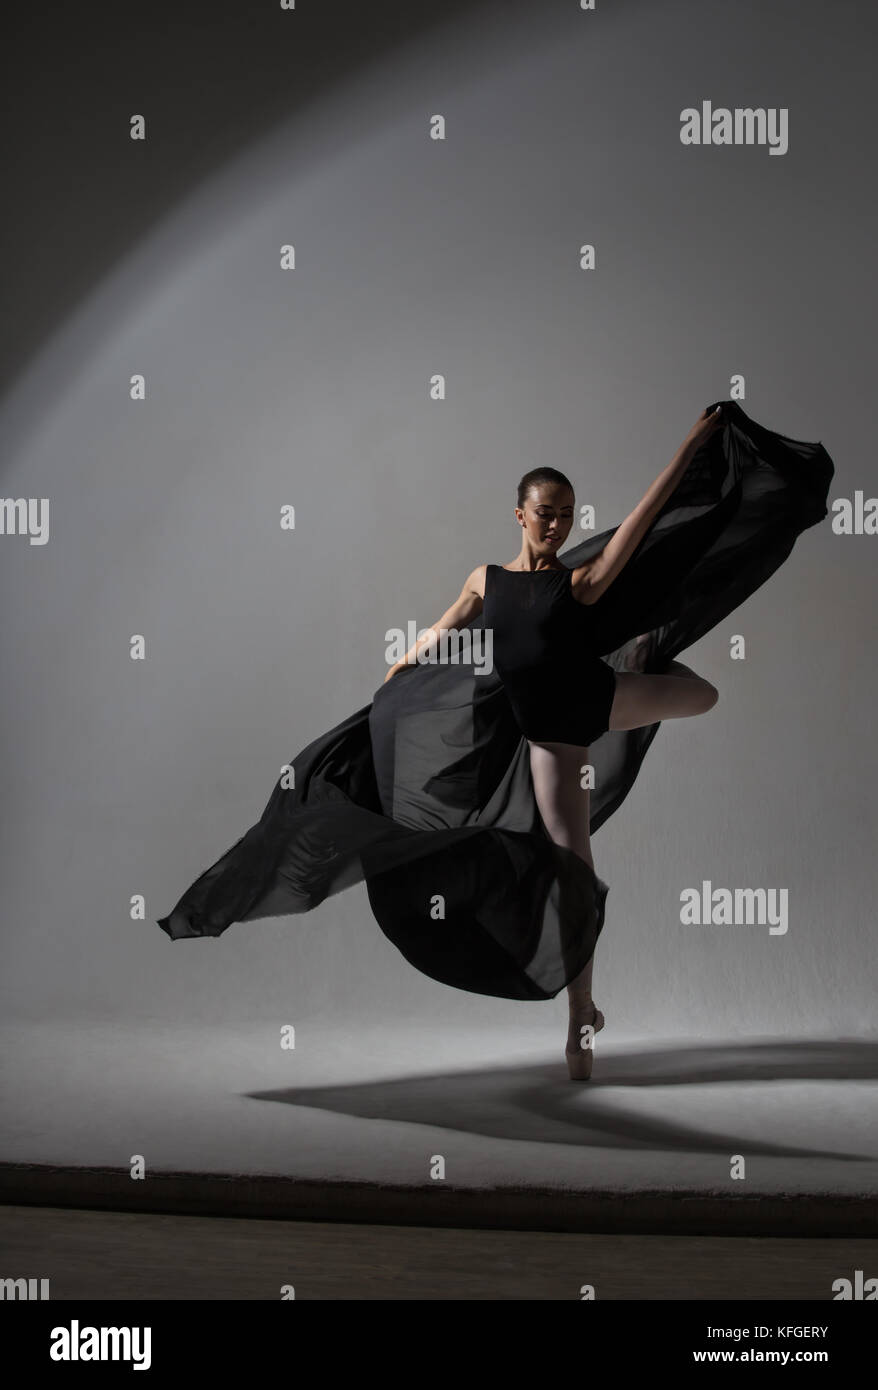 Graceful ballerina with black cloth whirling in the dance - Stock Image